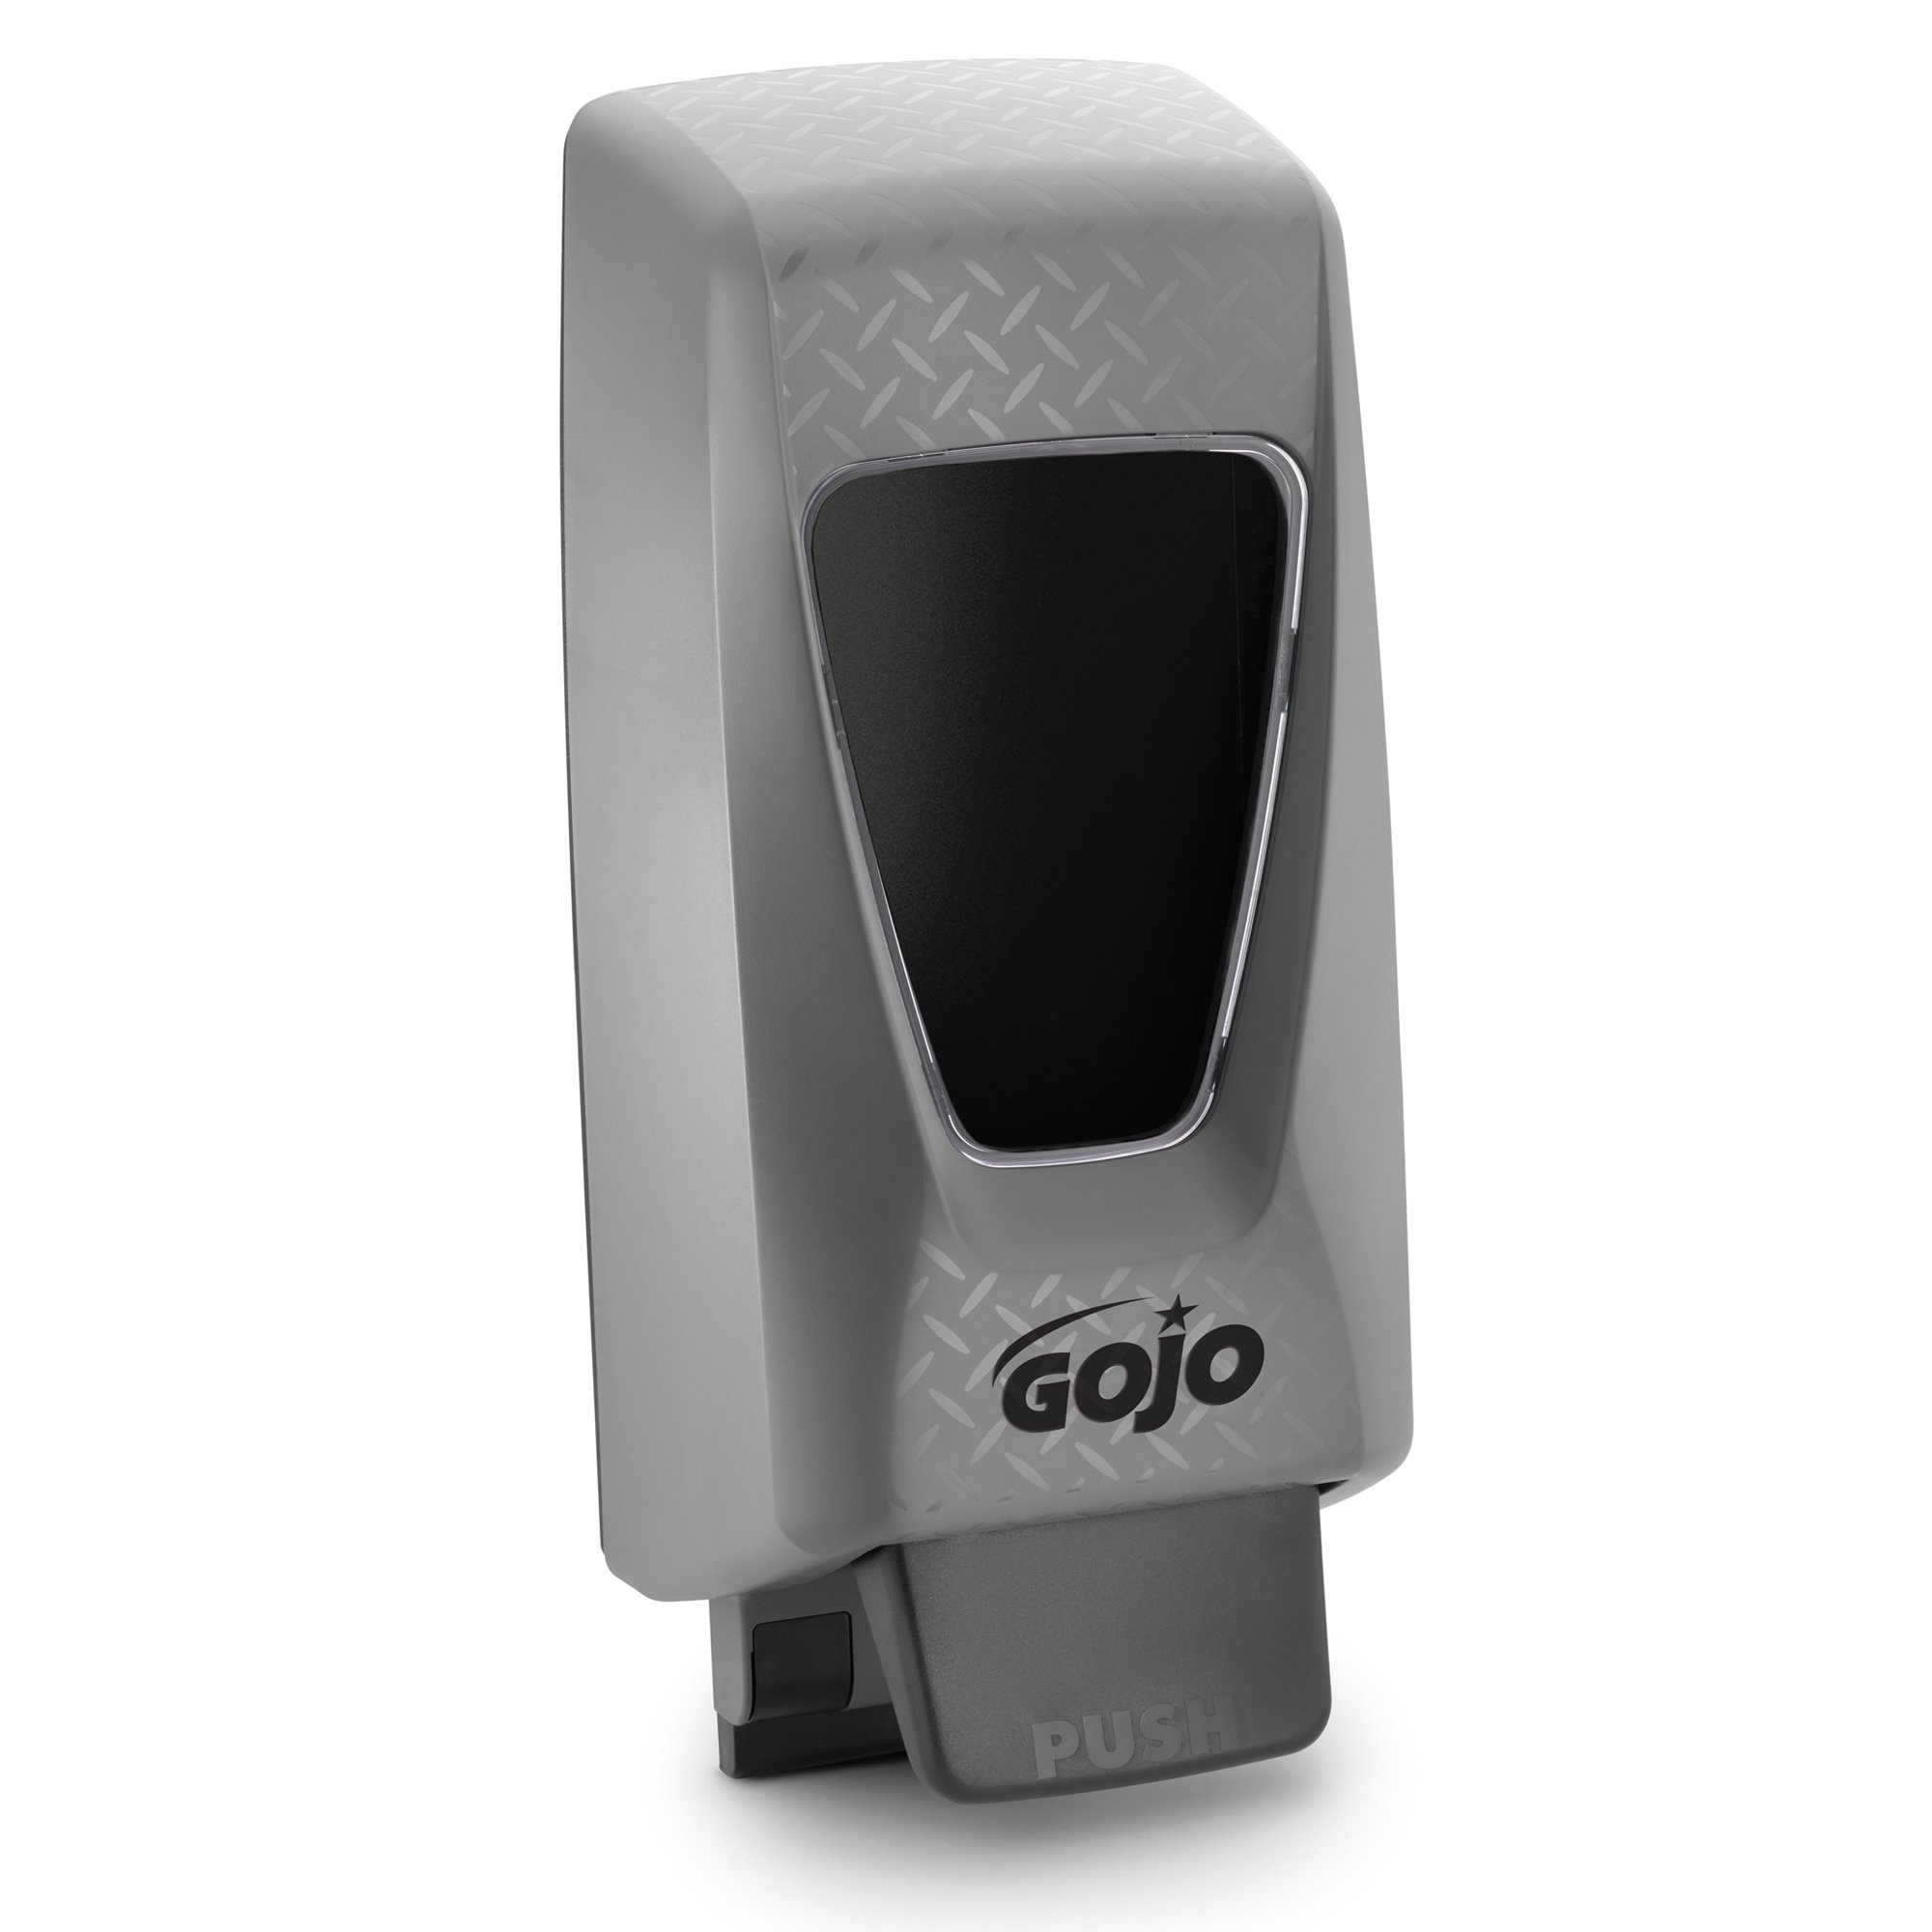 GOJO 7200-01 Pro 2000mL Black Dispenser